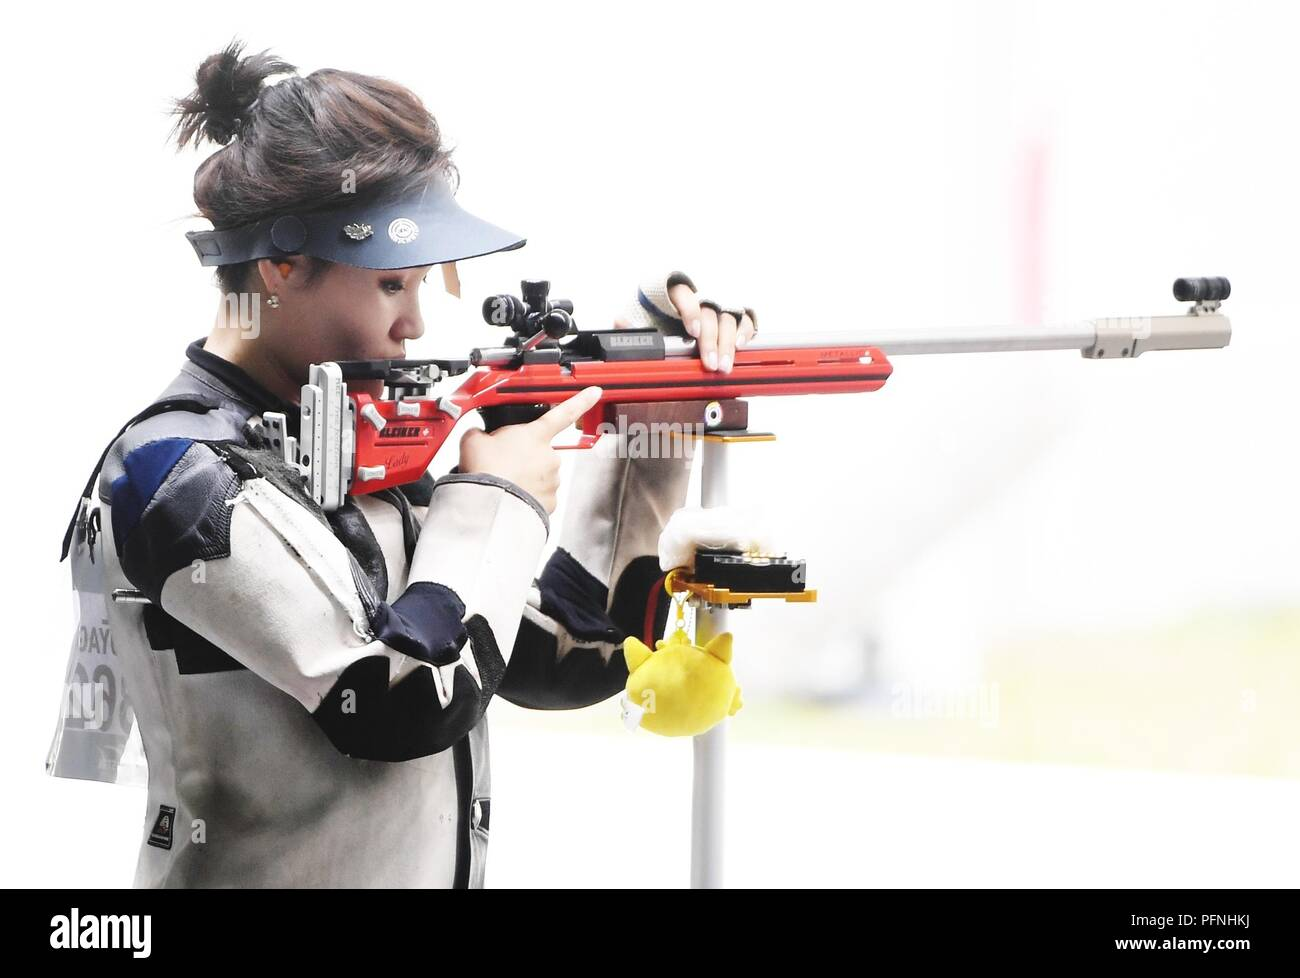 Palembang. 22nd Aug, 2018. Nandinzaya Gankhuyag of Mongolia competes during the women's 50m rifle 3 positions final at the 18th Asian Games in Palembang, Indonesia on Aug. 22, 2018. Credit: Wang Shen/Xinhua/Alamy Live News - Stock Image